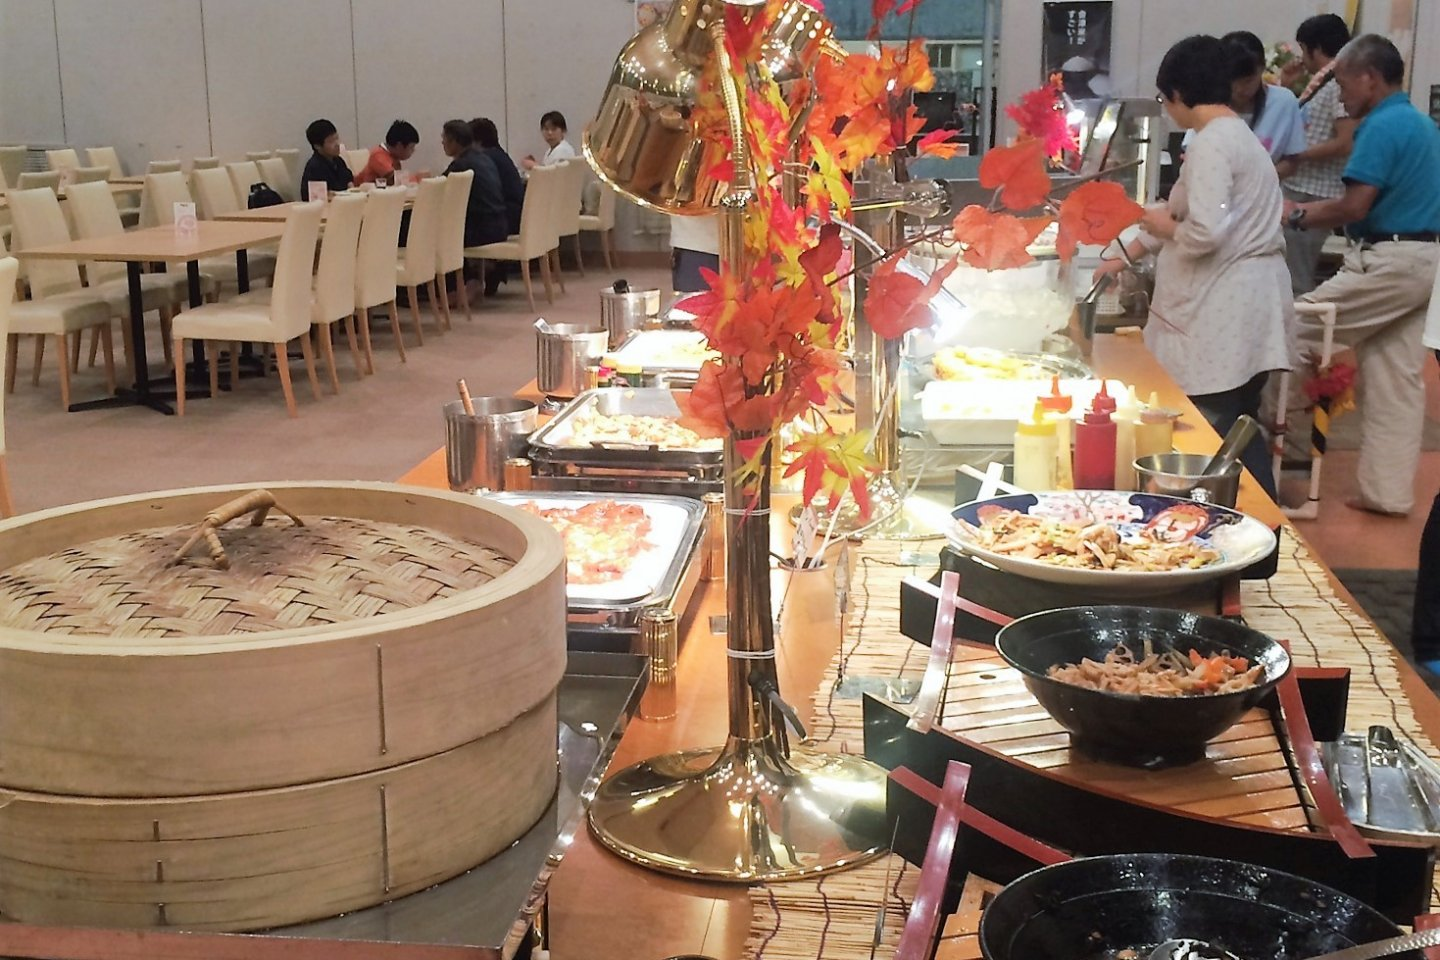 The fall display of food at one of the three tables of food.